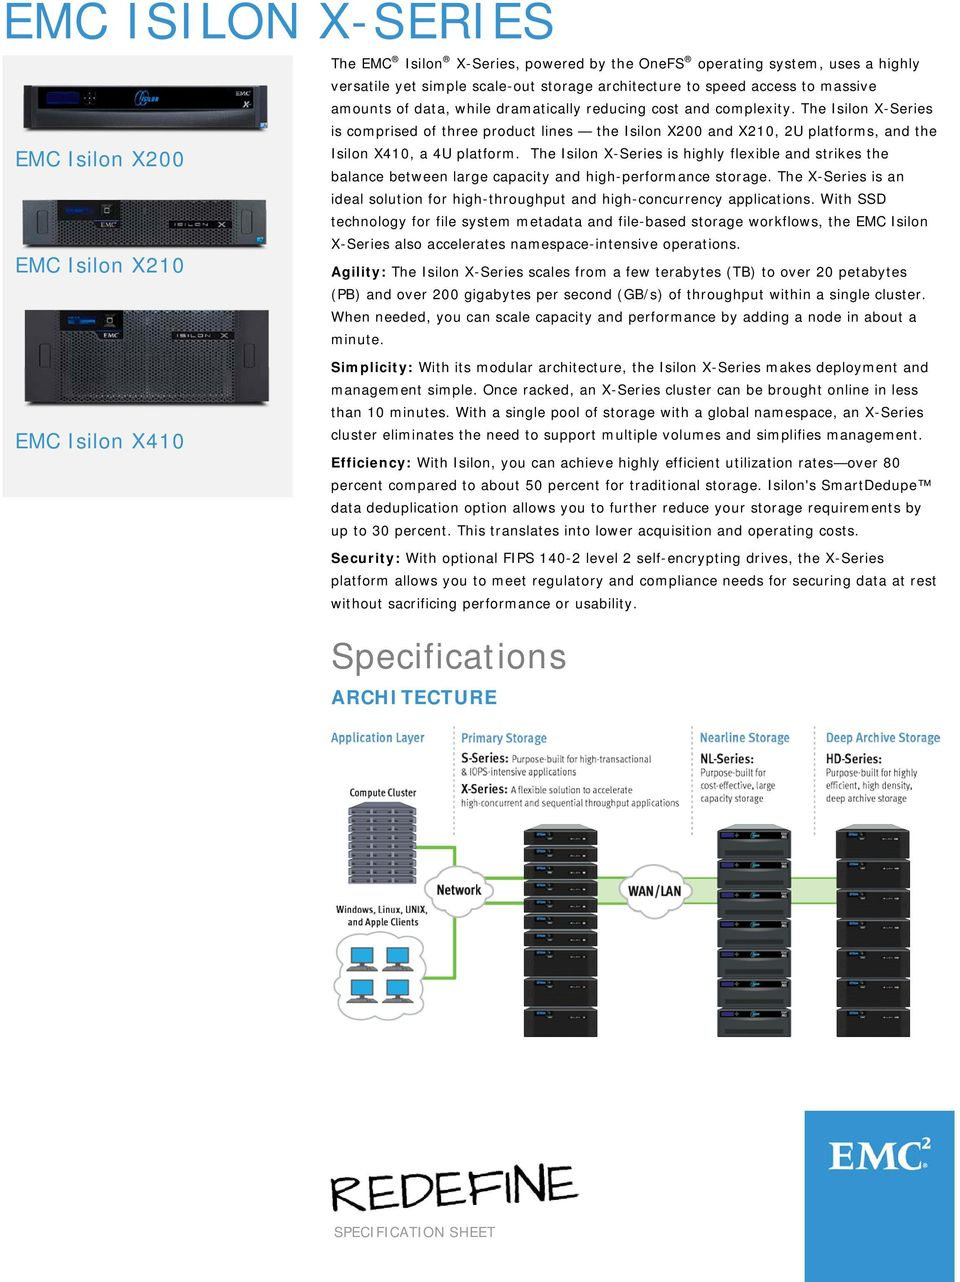 The Isilon X-Series is comprised of three product lines the Isilon X200 and X210, 2U platforms, and the Isilon X410, a 4U platform.